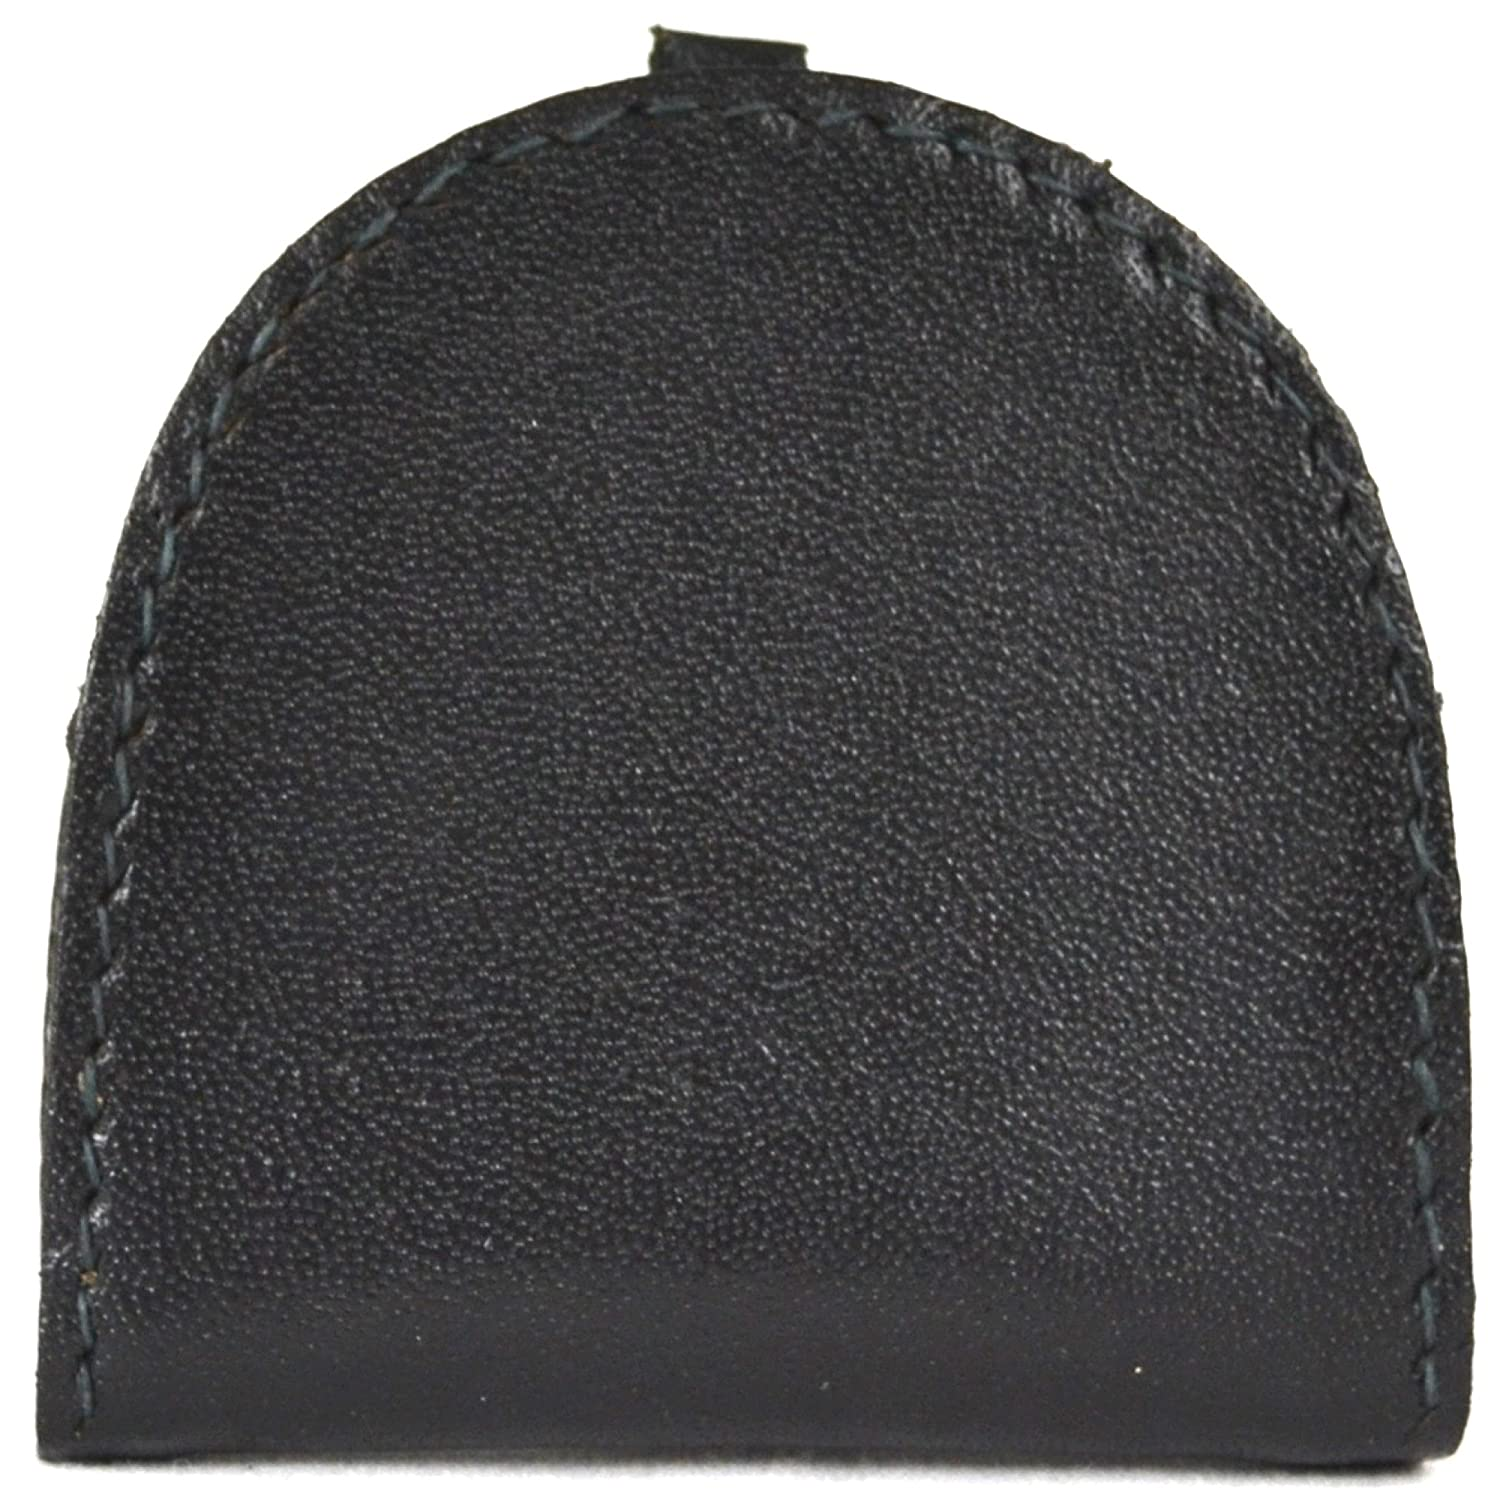 Black//Dark Brown//Mid Brown Real Leather Semi Round Money Tray Purse